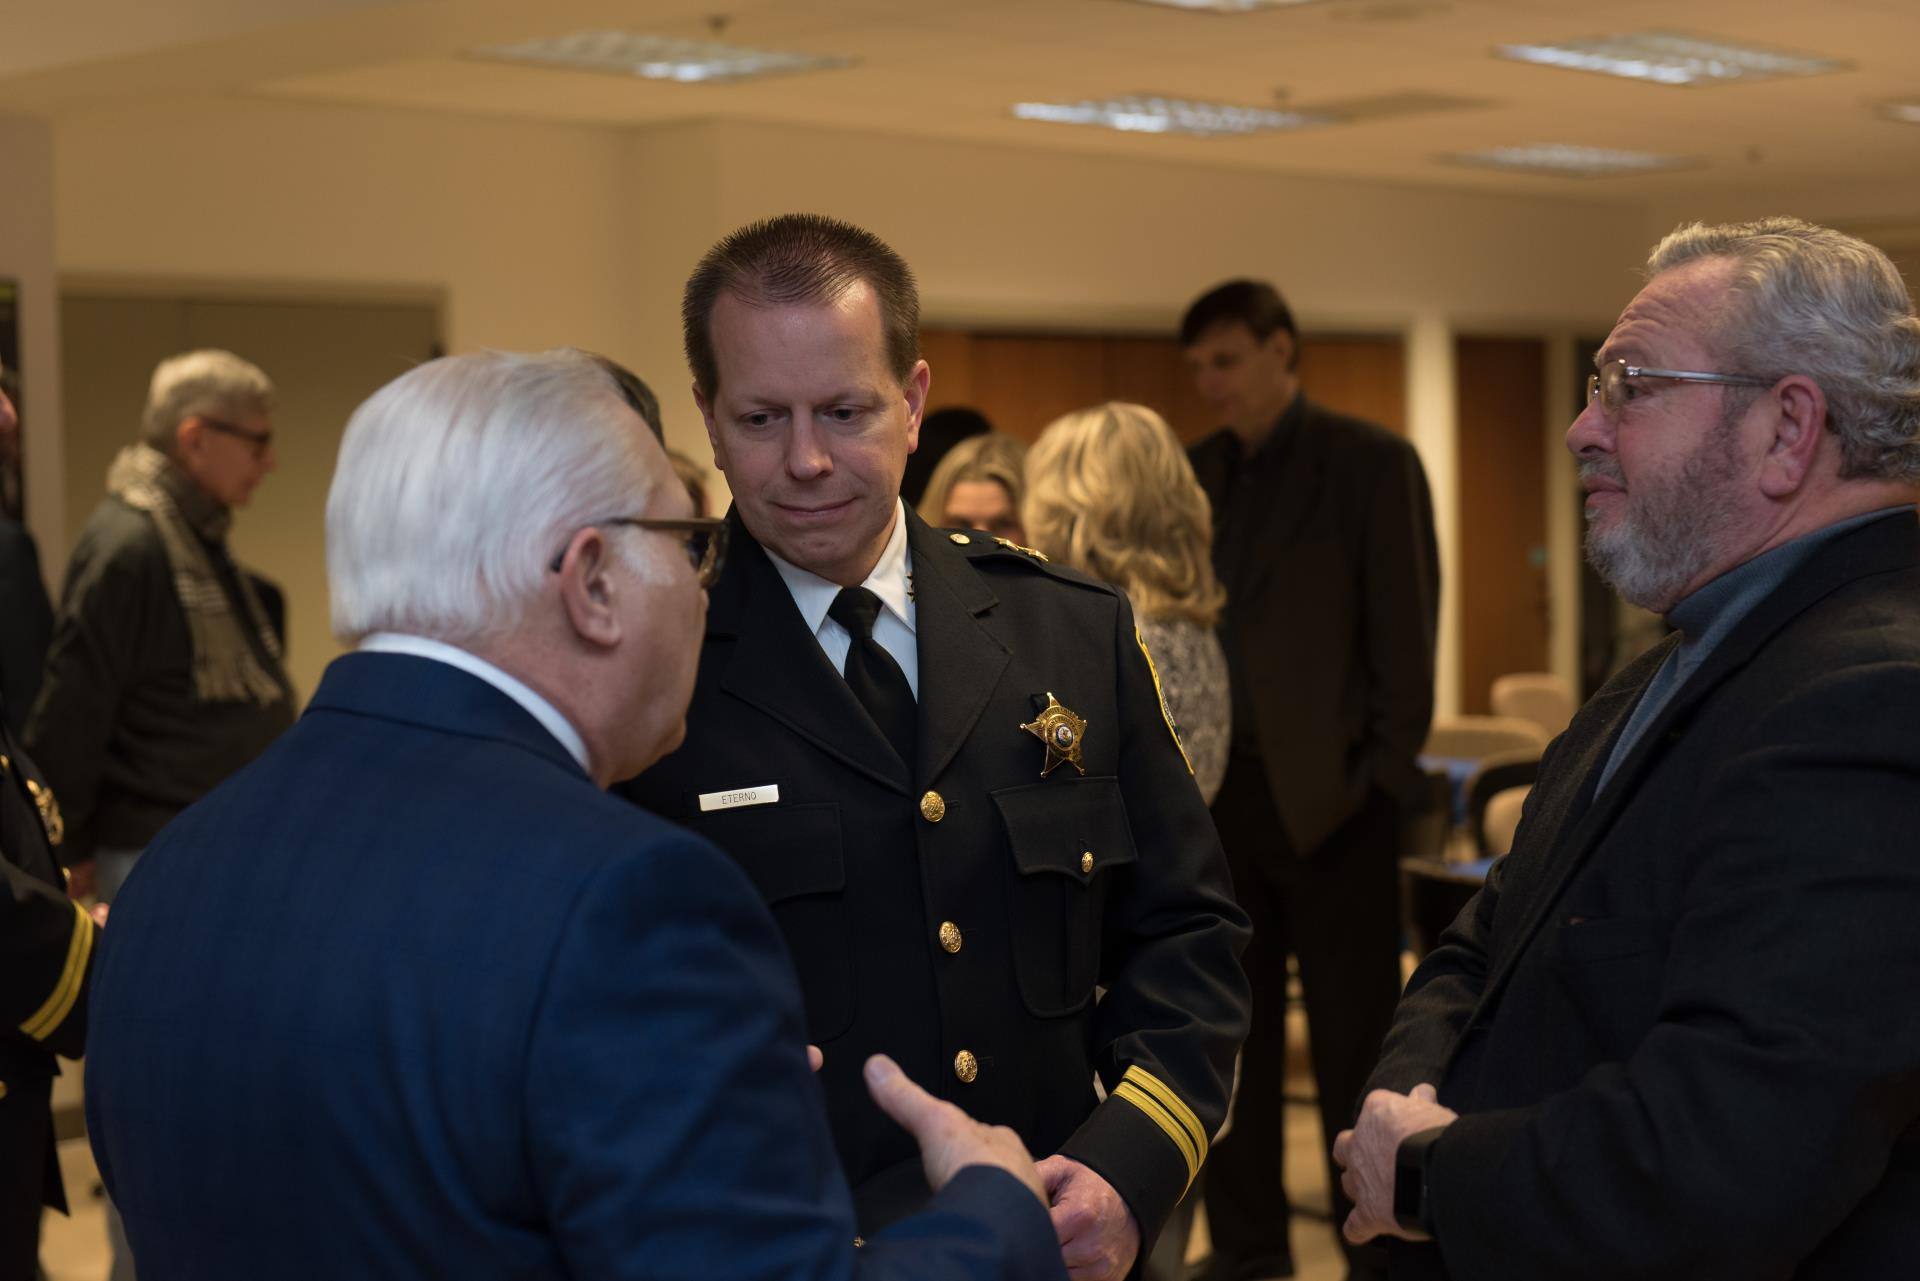 Chief Koziol Swearing-In Ceremony Final-4153